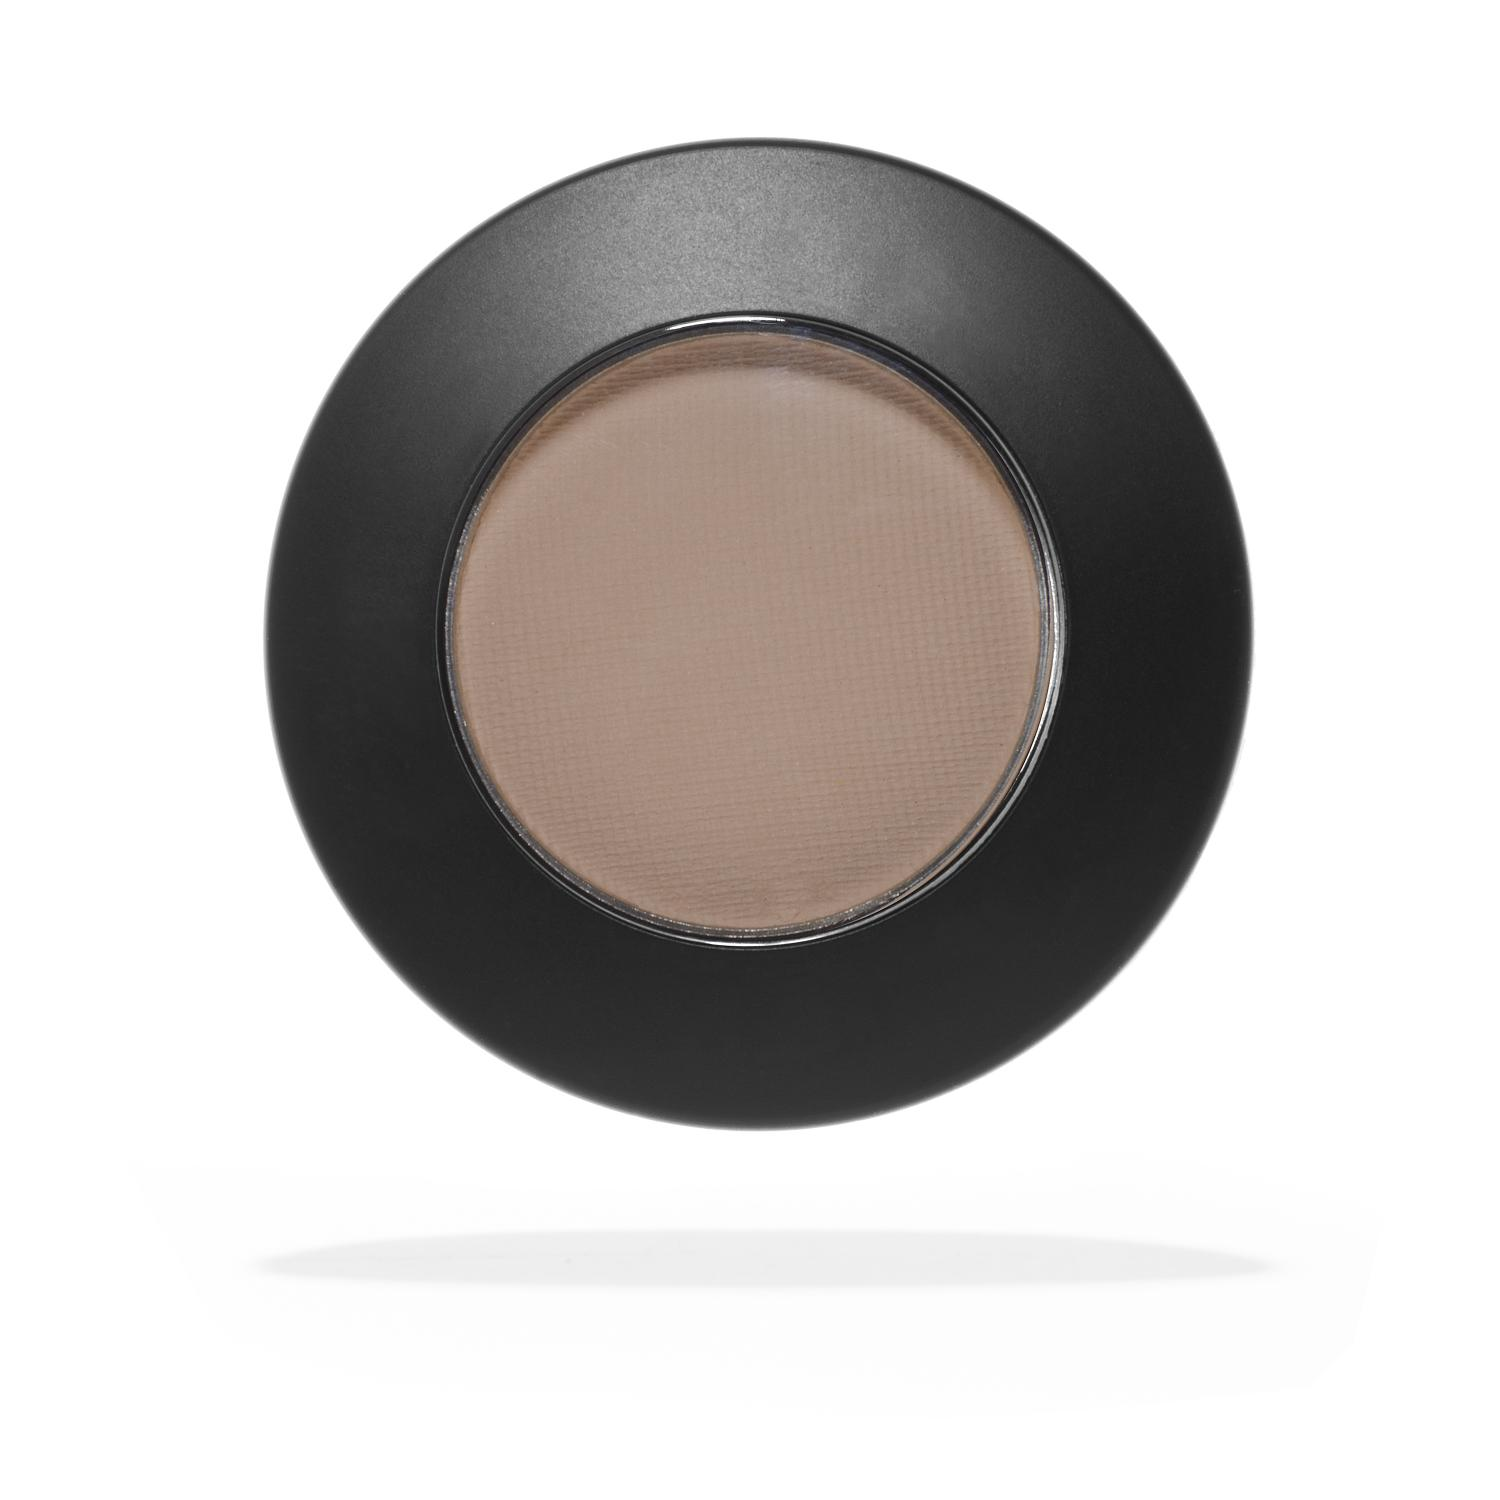 CLOC - MICRONIZED EYE SHADOW